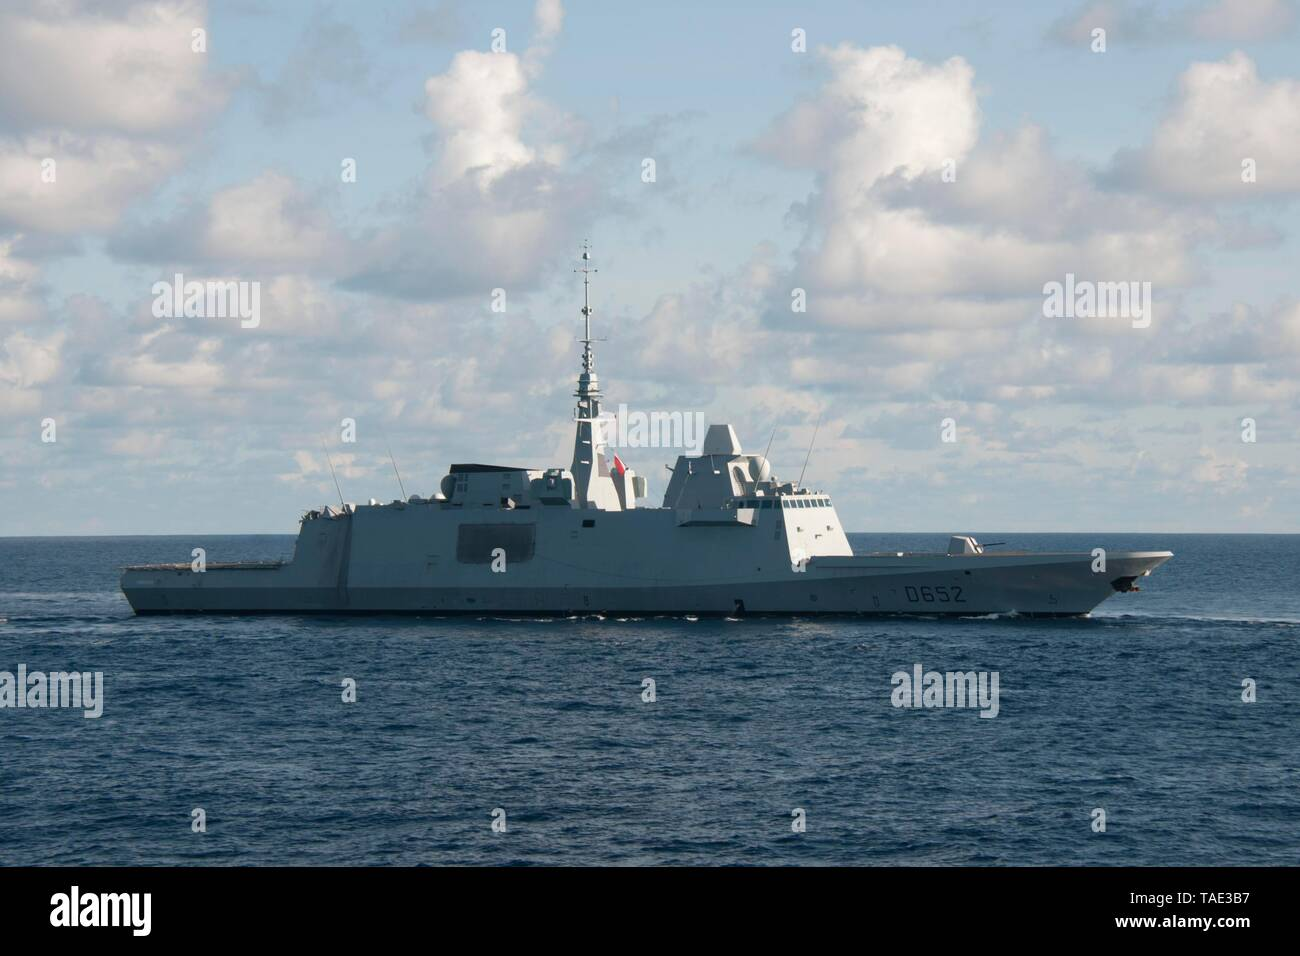 190520-N-VA840-0005 INDIAN OCEAN (May 21, 2019) The French Aquitaine-class FREMM multipurpose frigate FS Provence D652, sails alongside the Arleigh Burke-class guided-missile destroyer USS William P. Lawrence (DDG 110) during a multi-nation group sail in the Indian Ocean. William P. Lawrence is deployed to the U.S. 7th Fleet area of operations in support of security and stability in the Indo-Pacific                     region. (U.S. Navy photo by Mass Communication Specialist 1st Class Leonard Adams) - Stock Image